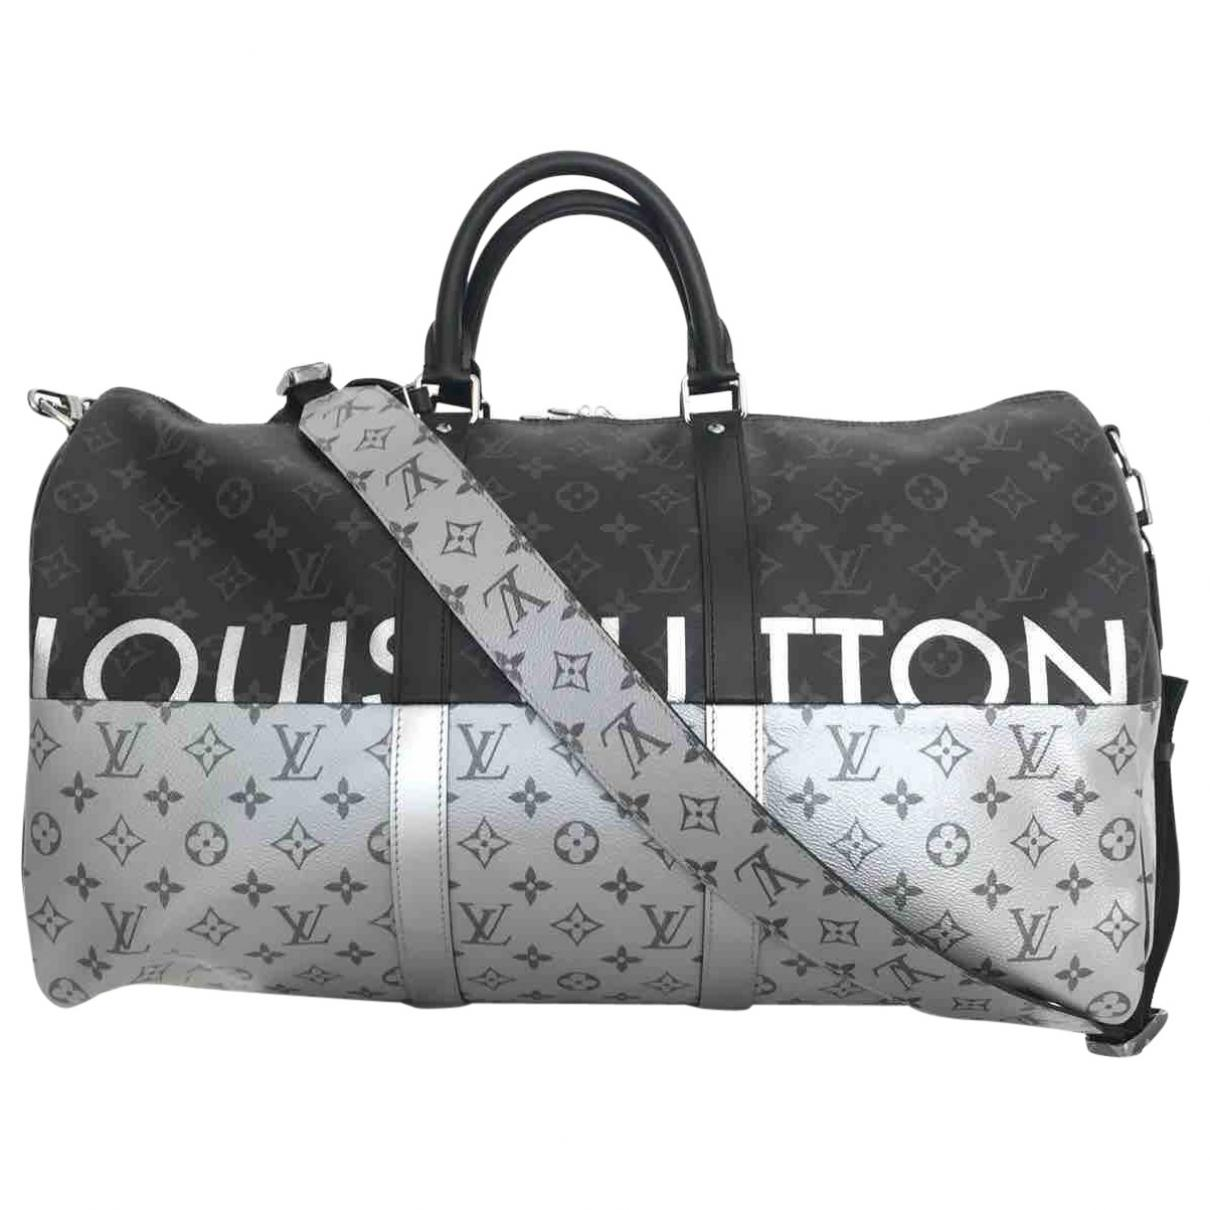 Lyst - Louis Vuitton Keepall Cloth Weekend Bag in Gray for Men f91cbe6723d